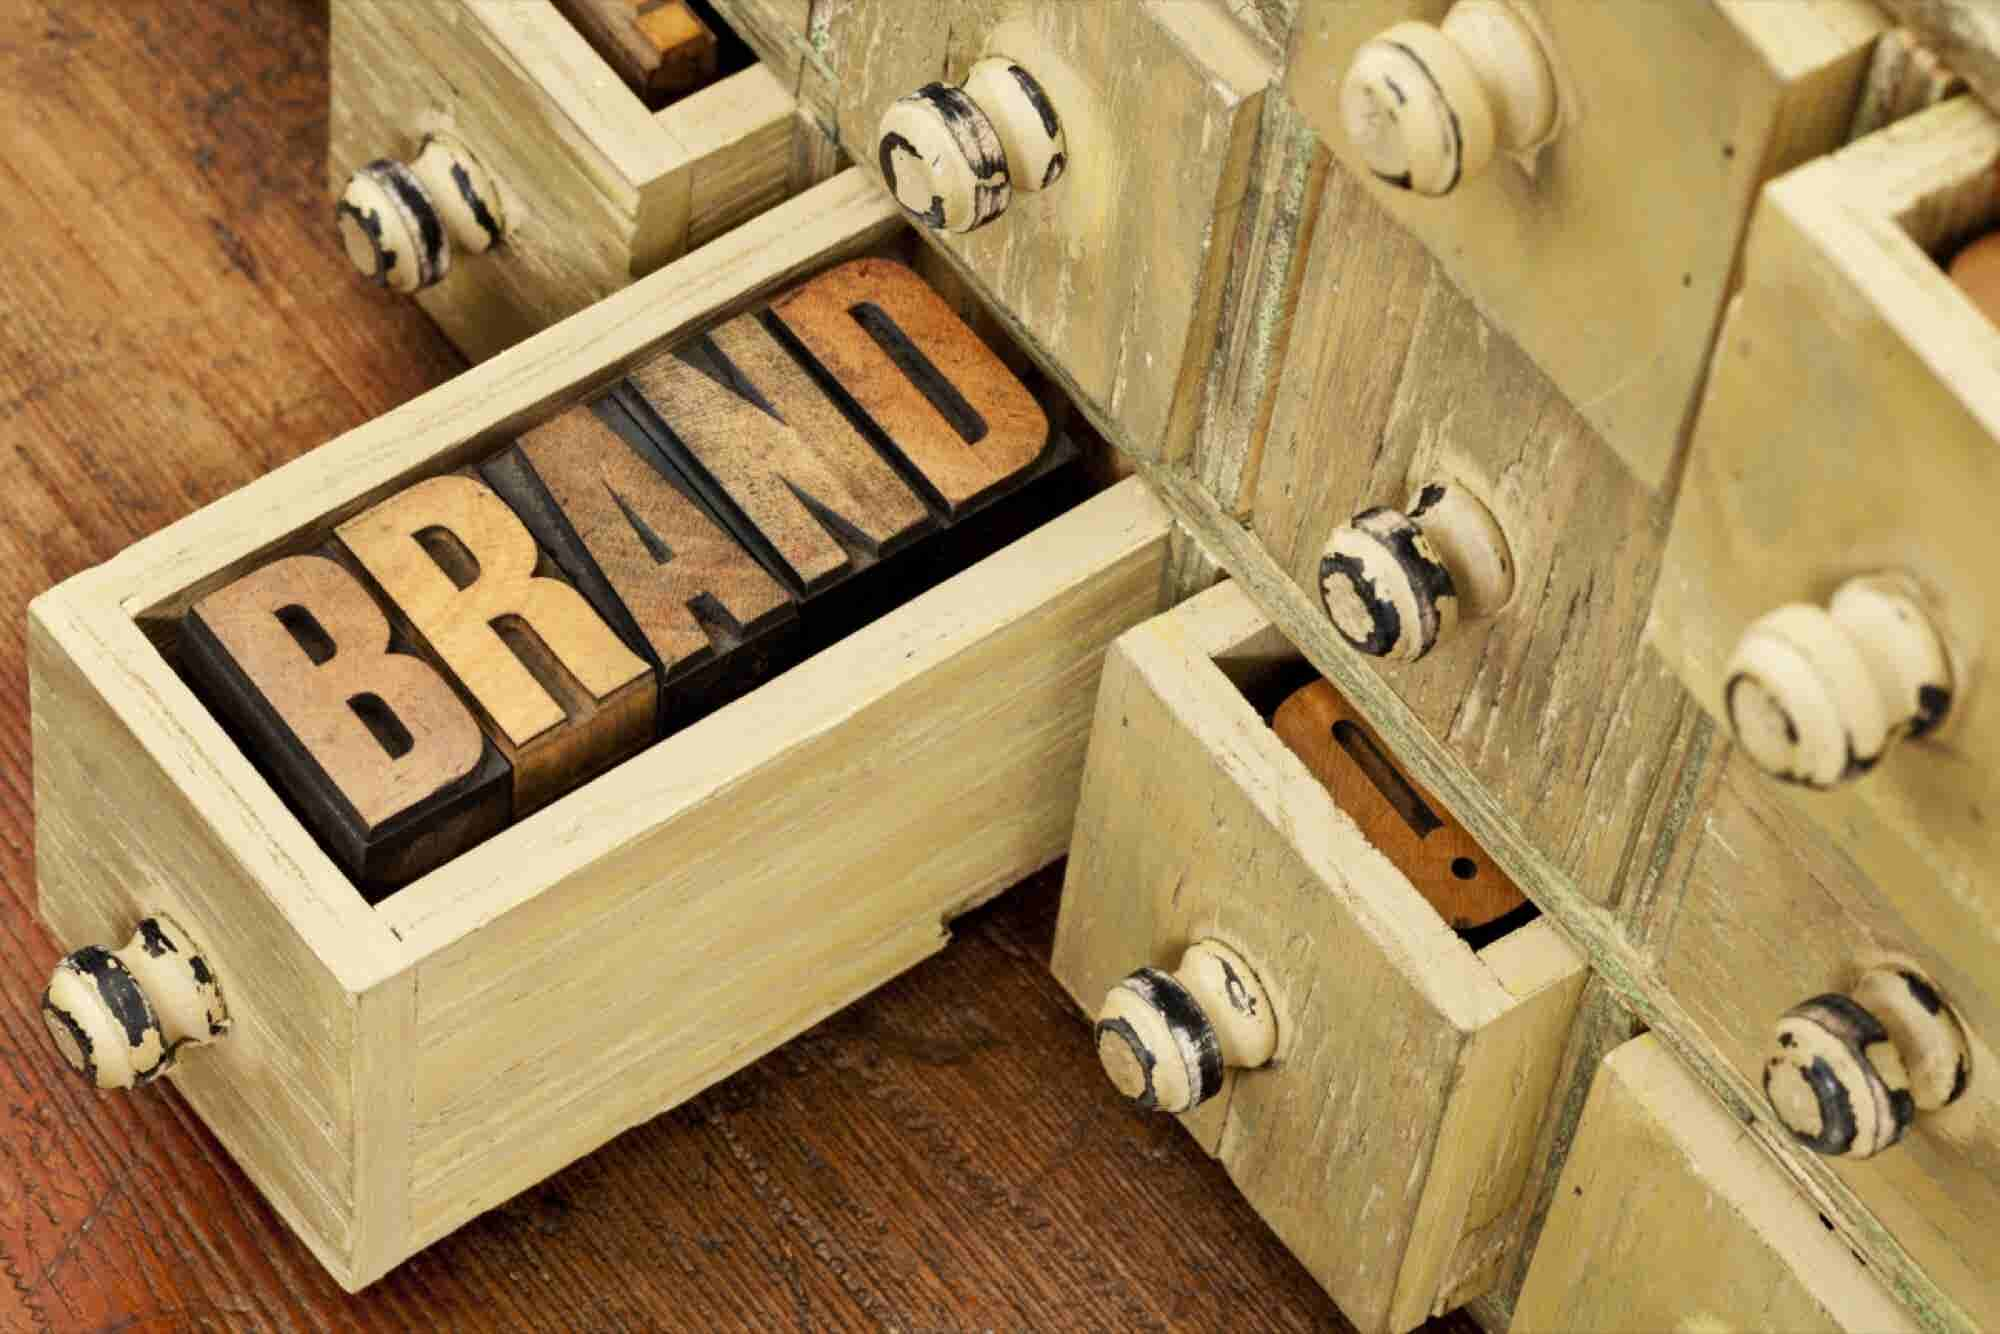 4 Branding Strategies That Sound Good, But Will Hurt Your Growth